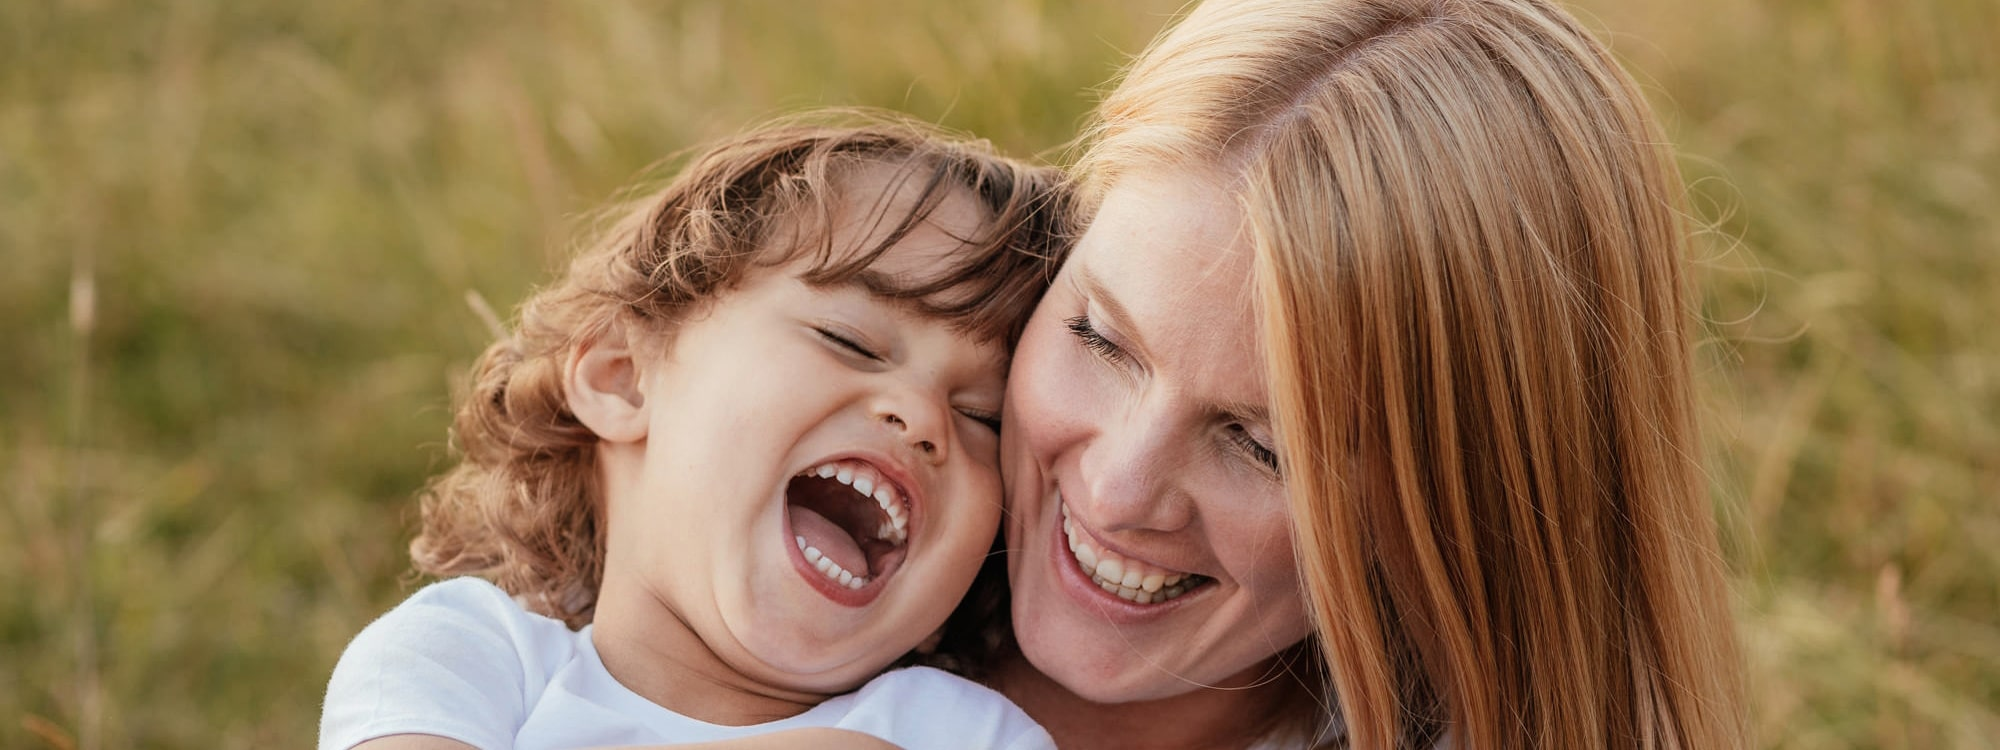 Mother and Son Embrace laughing in candid natural cute family photography essex